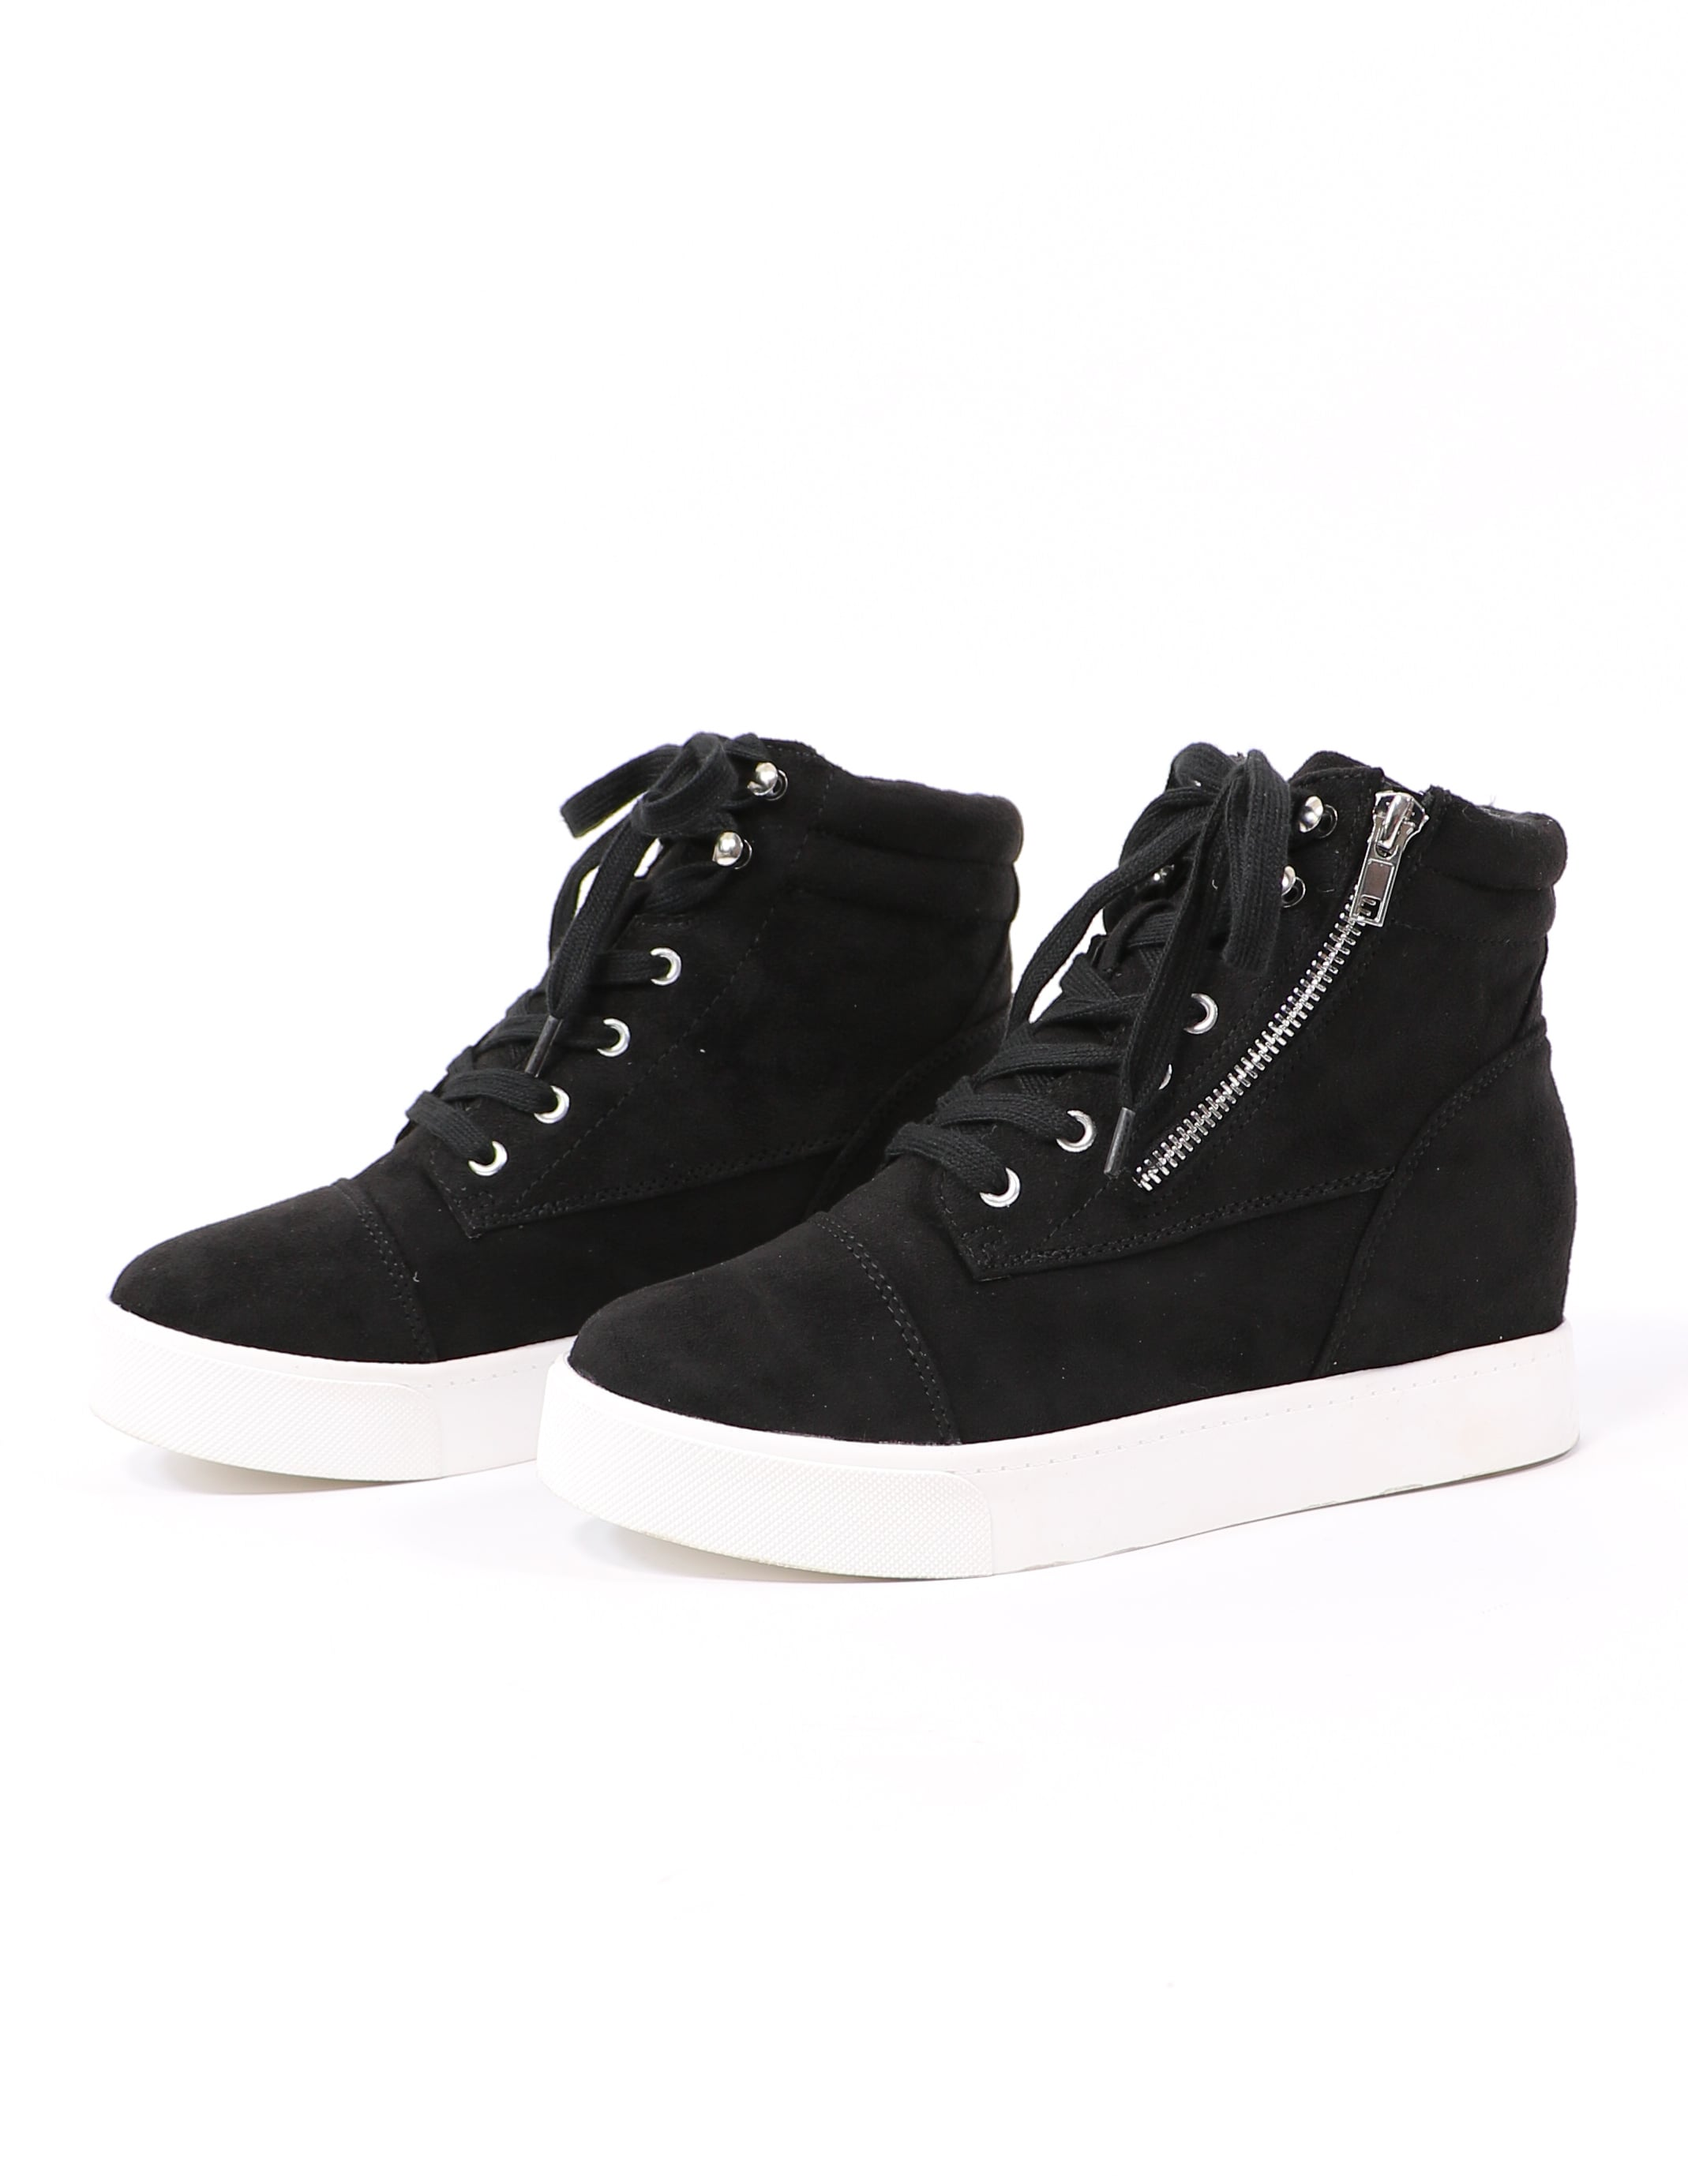 Level up lace up sneaker in black on white background - elle bleu shoes